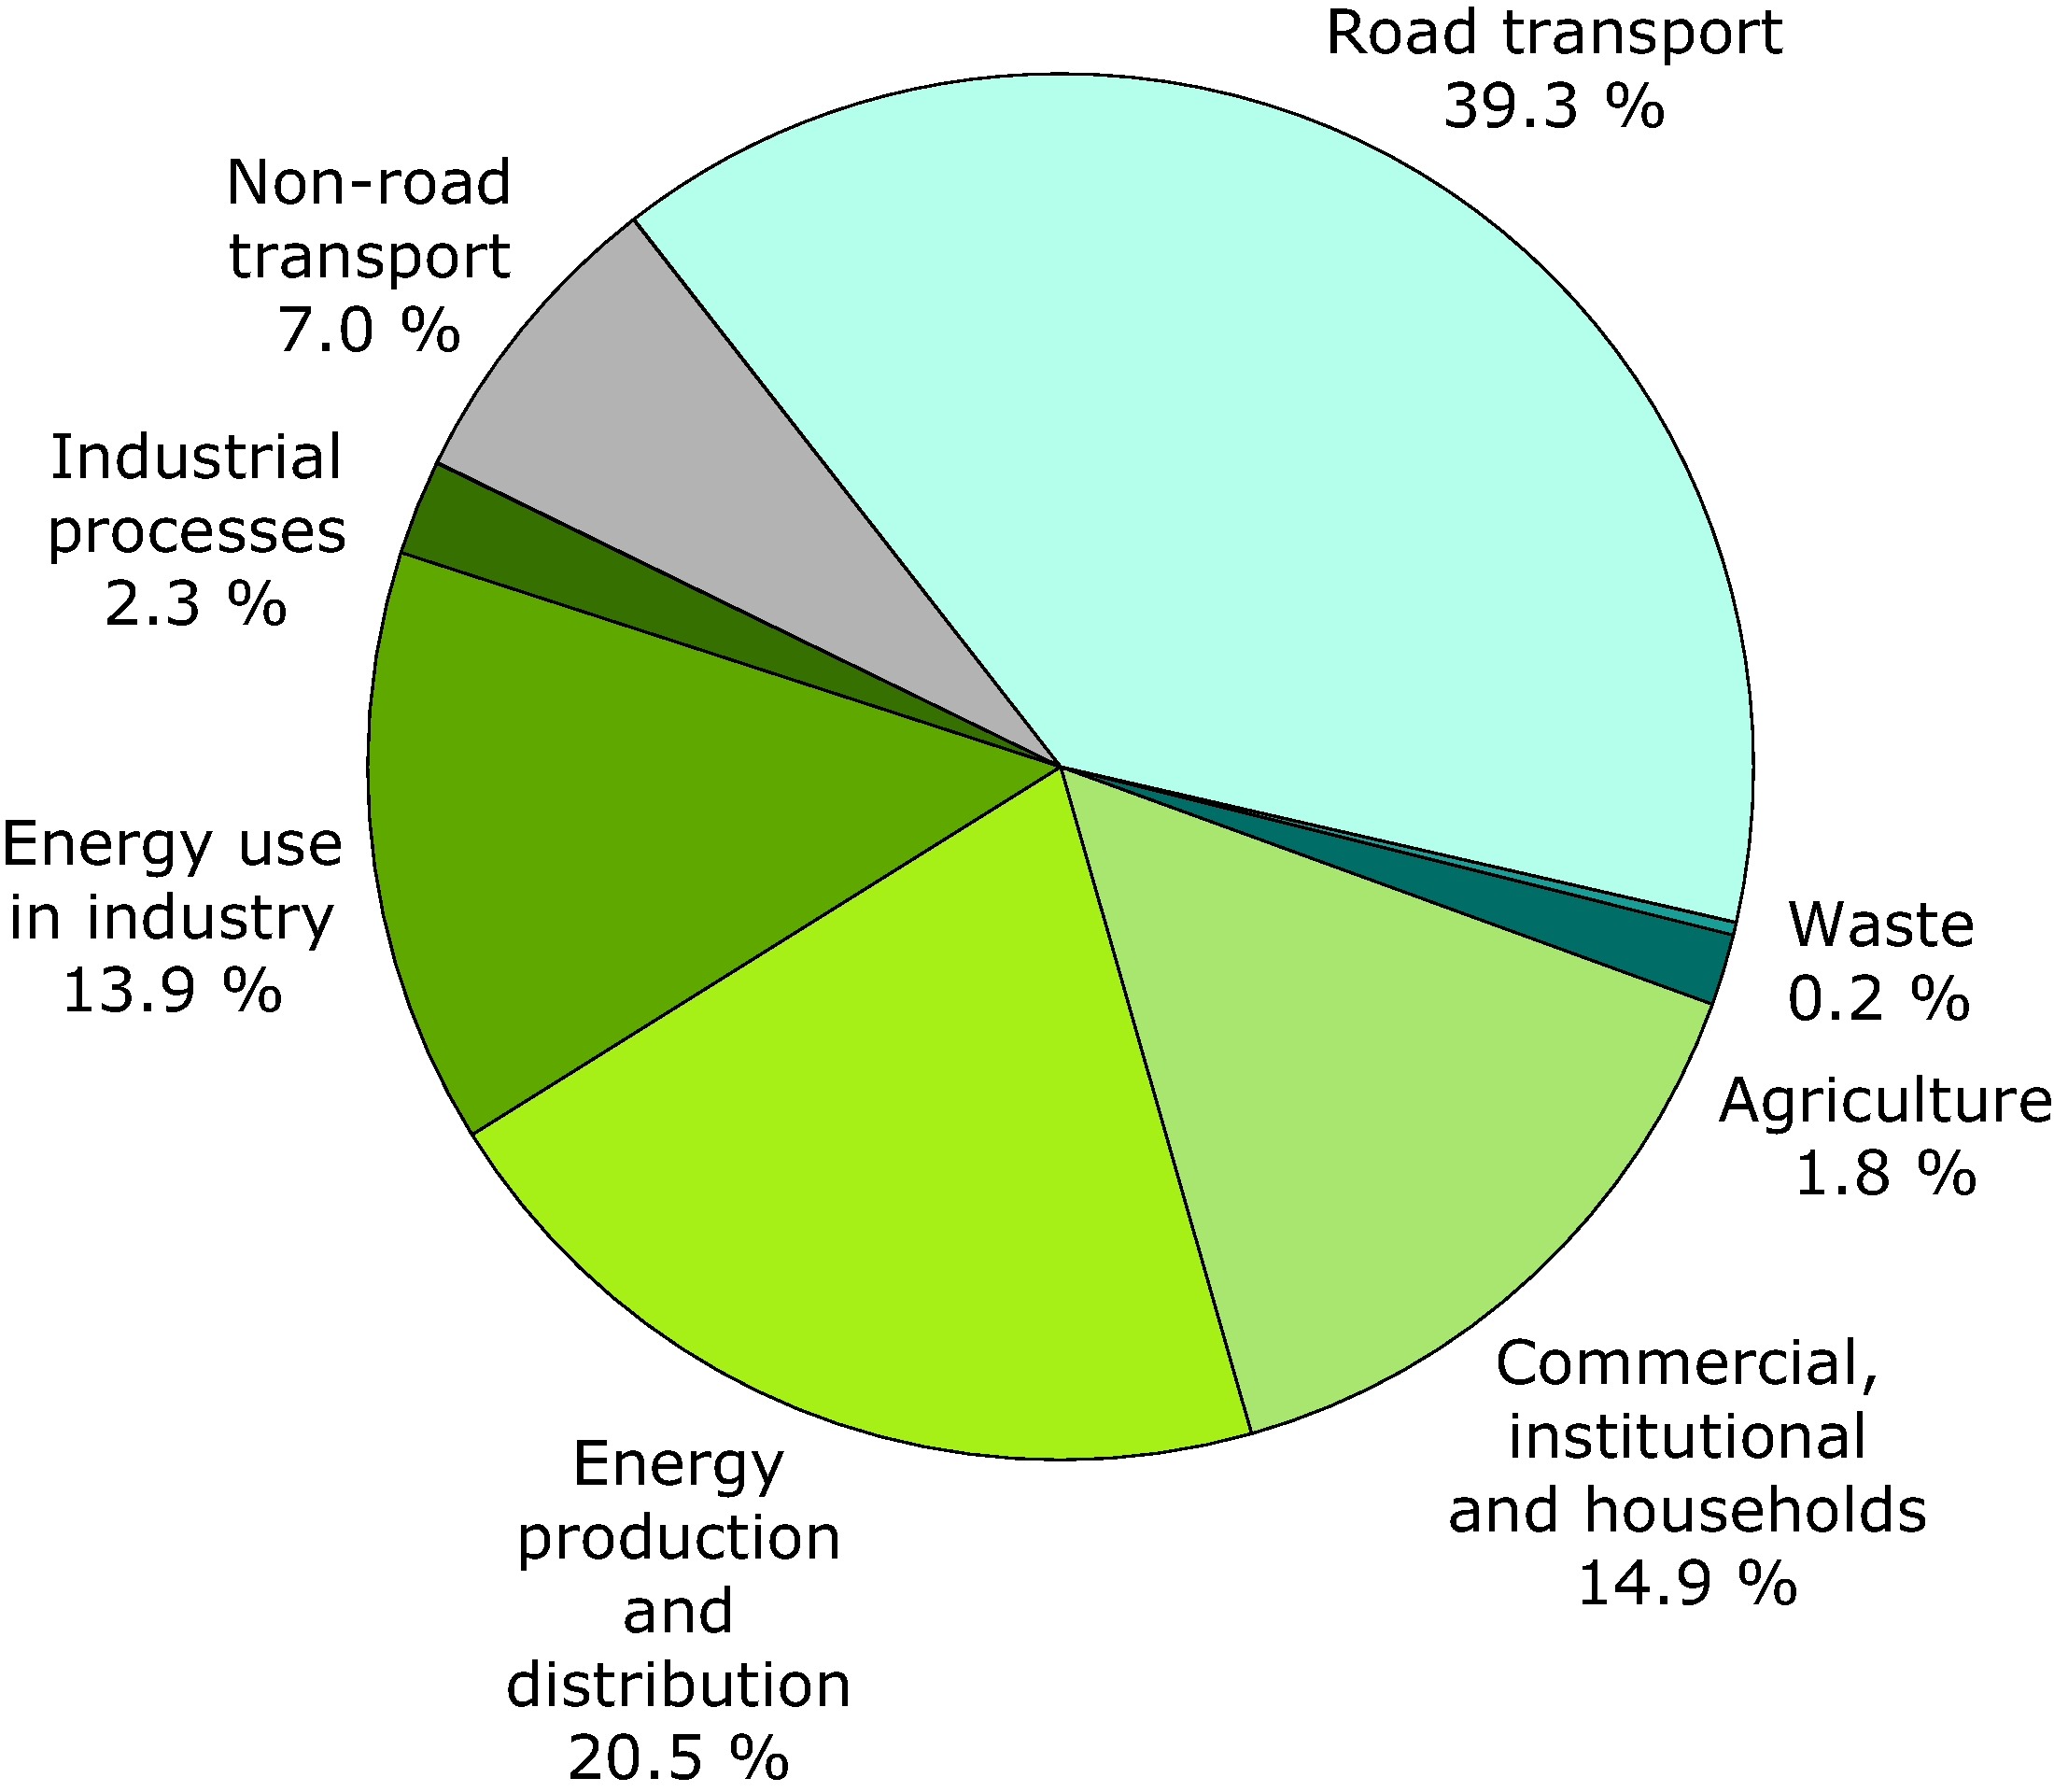 Emissions by sector of nitrogen oxides - 2008 (EEA member countries)